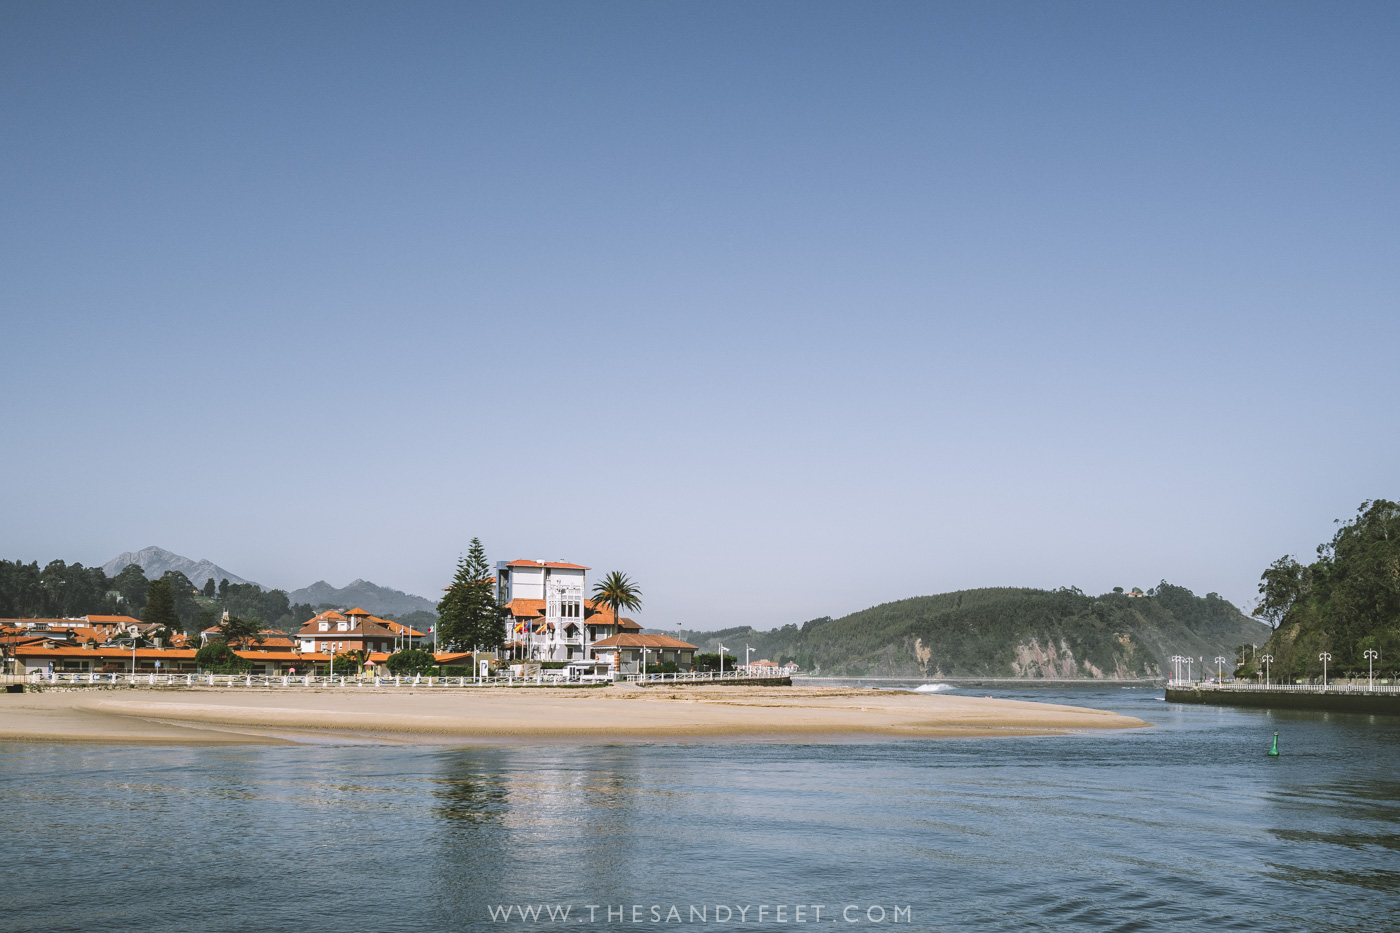 Ribadesella Waterfront | A Taste Of Northern Spain: 11 Incredible Places To Visit In Asturias | The Best Things To Do In Asturias, Spain